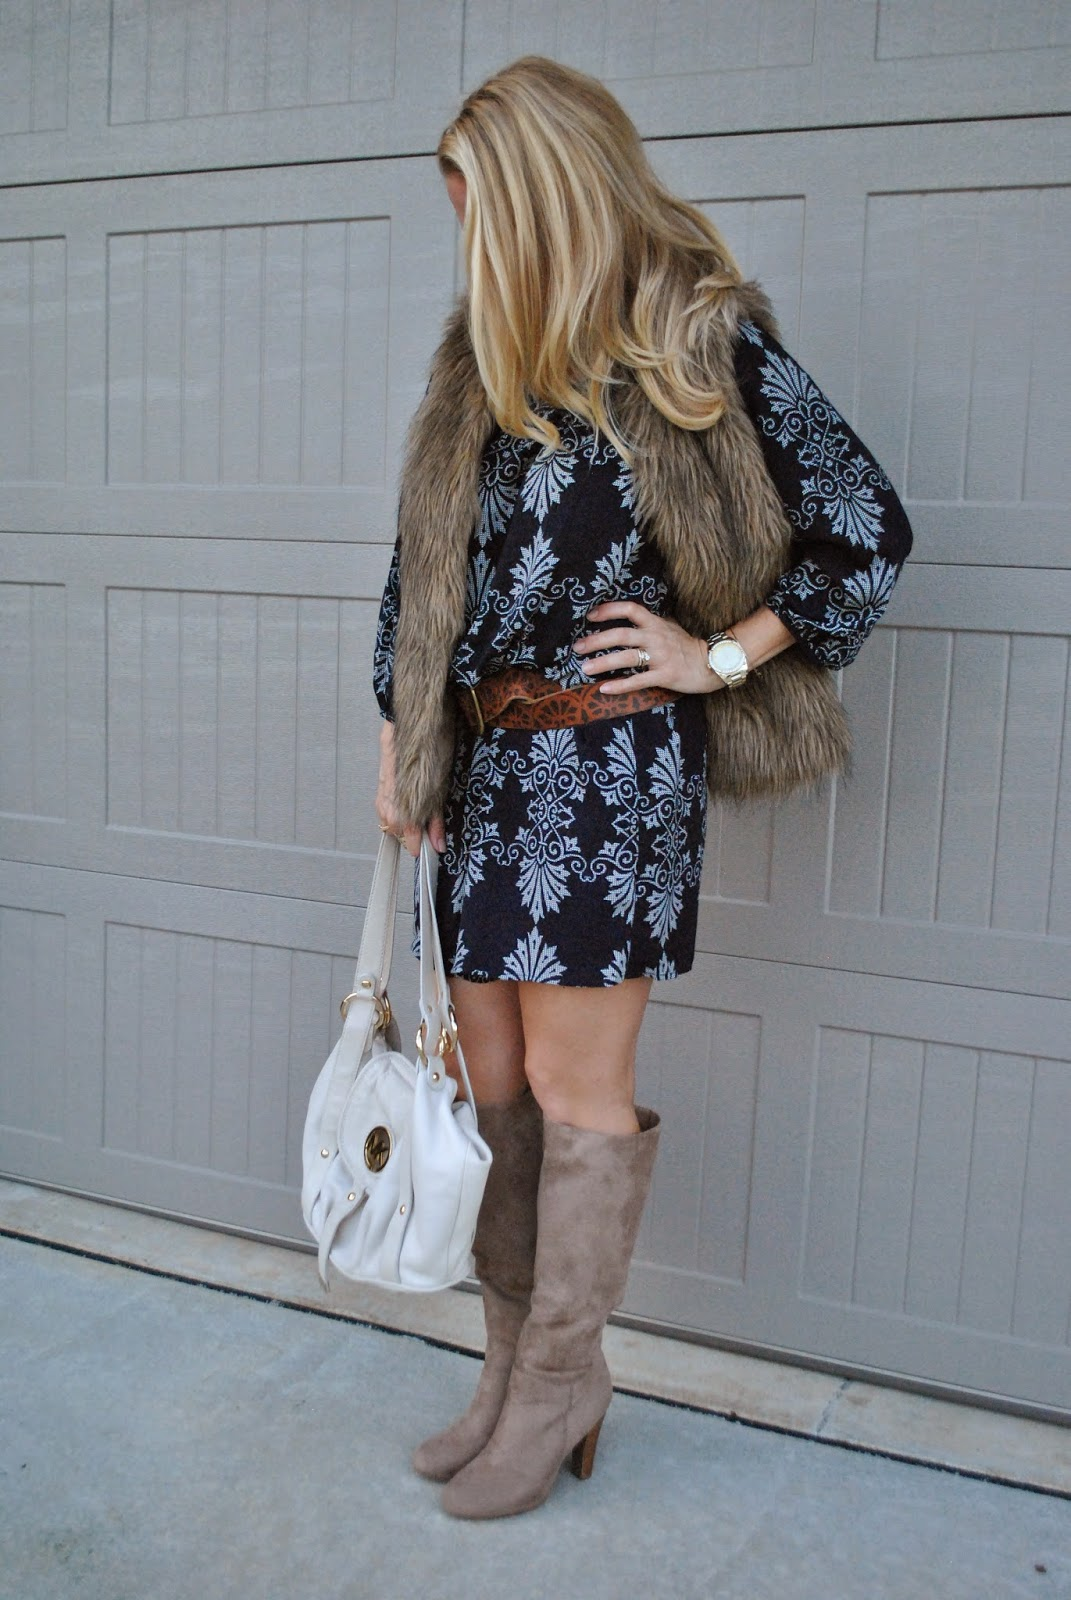 Forever 21 Baroque Print Shift Dress Stacked Heel Beige Boots Fur Vest~The Army Life of an Aviators Wife